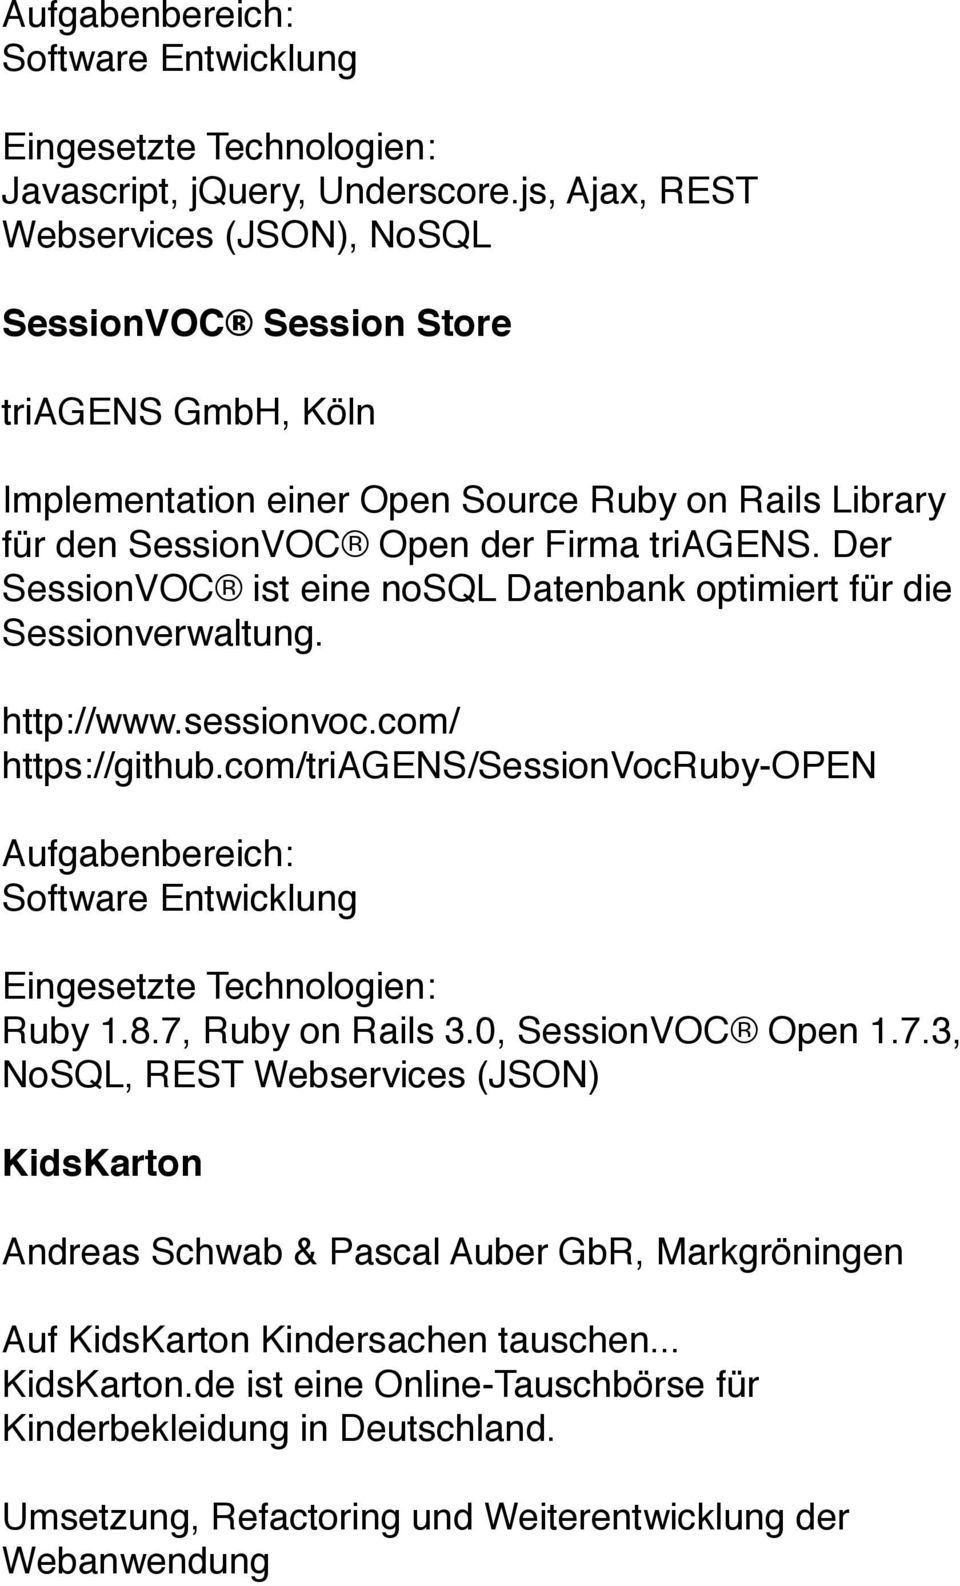 Der SessionVOC ist eine nosql Datenbank optimiert für die Sessionverwaltung. http://www.sessionvoc.com/ https://github.com/triagens/sessionvocruby-open Software Entwicklung Ruby 1.8.